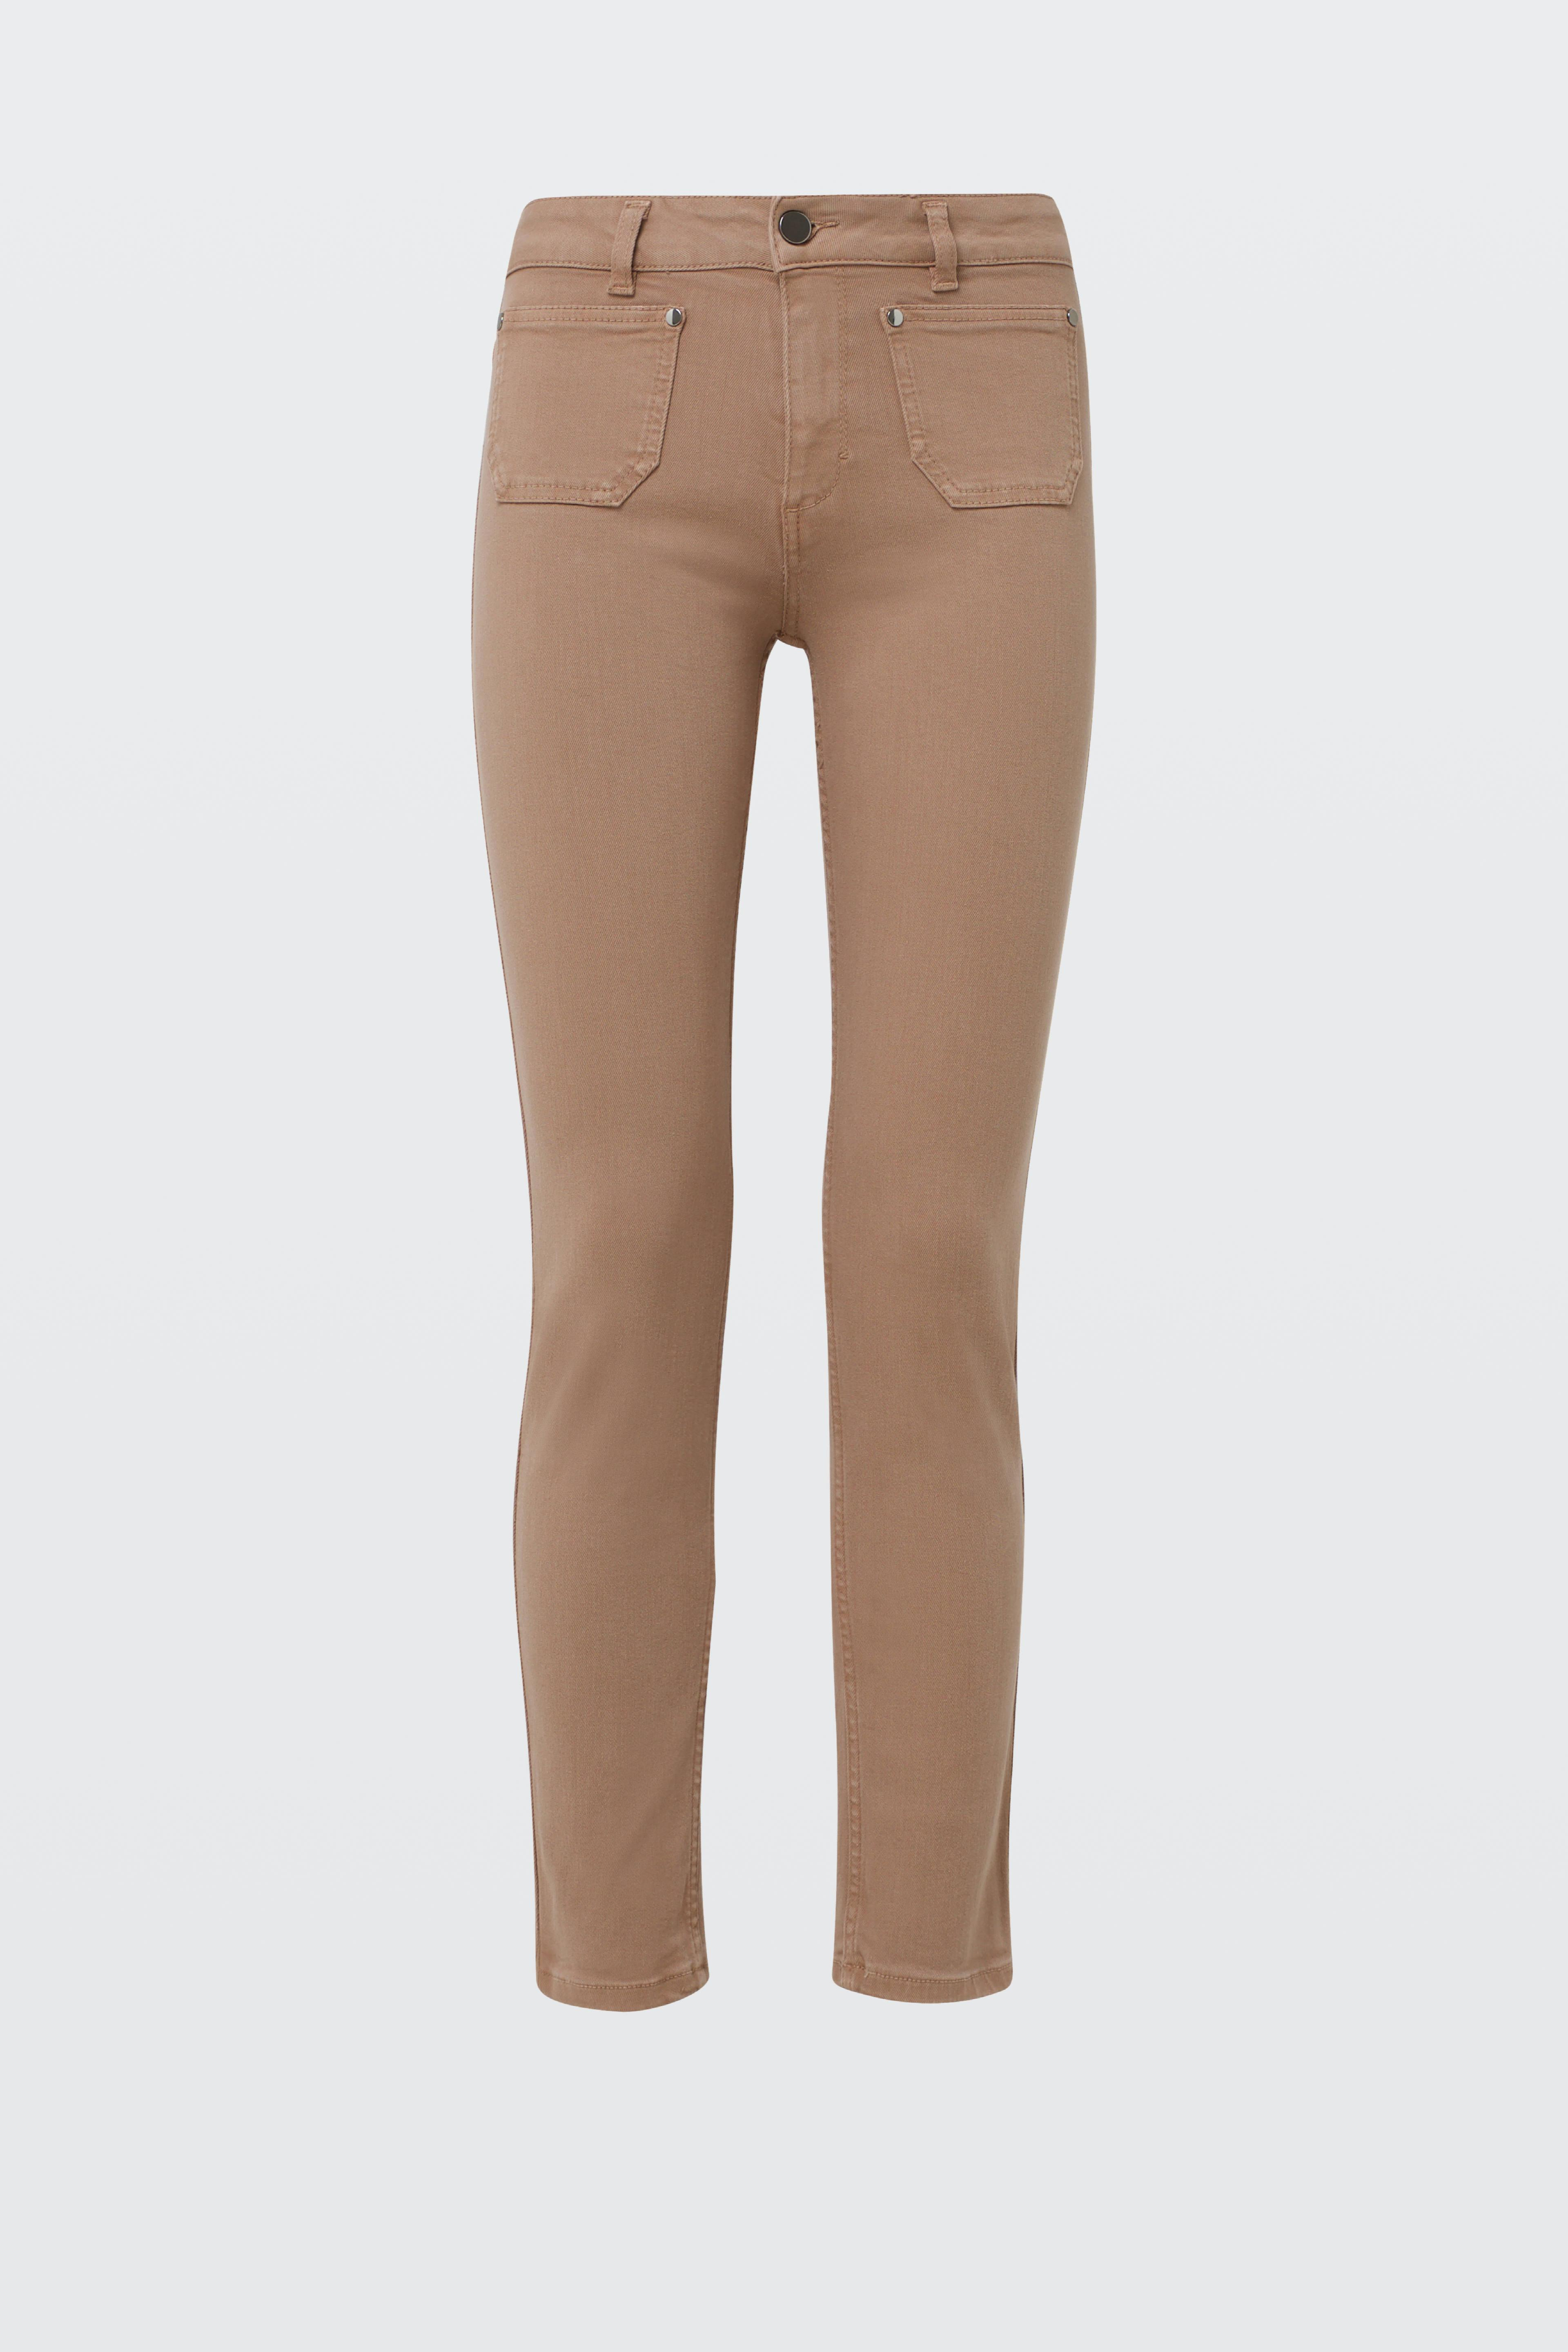 SURREAL AFFAIR cargo pants 2 Dorothee Schumacher Outlet Purchase auIpxHP